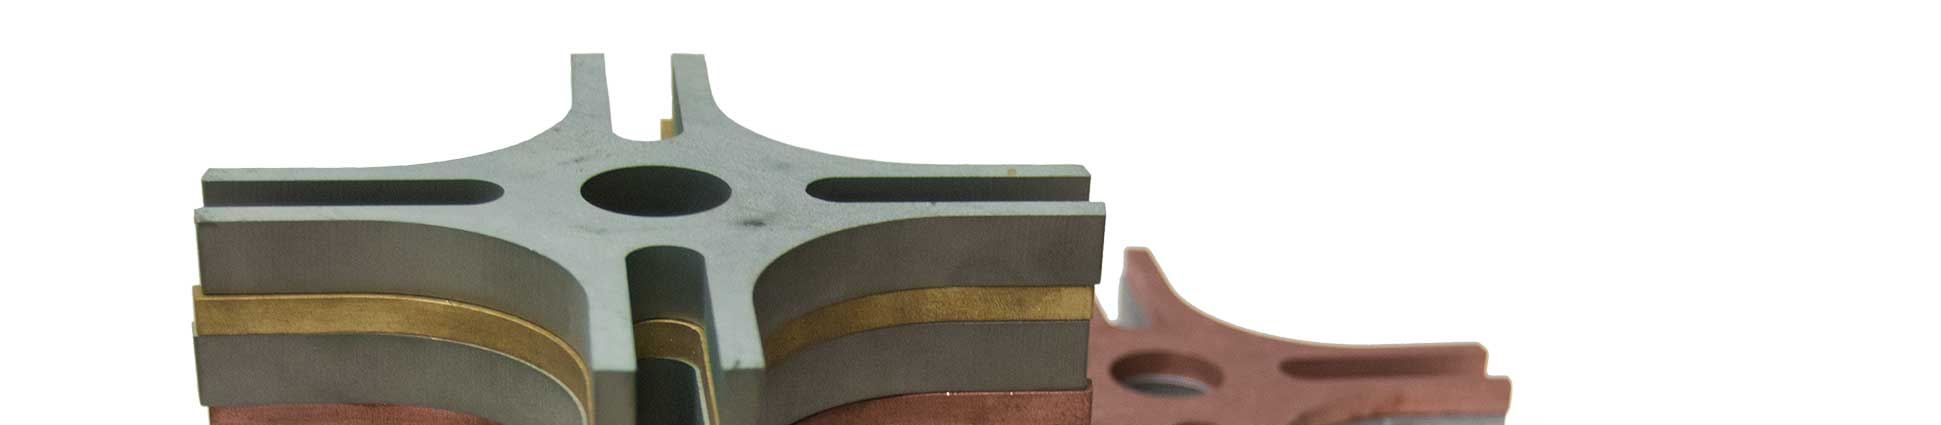 Top view of a variety of waterjet cut materials, cut in the same pattern and stacked vertically